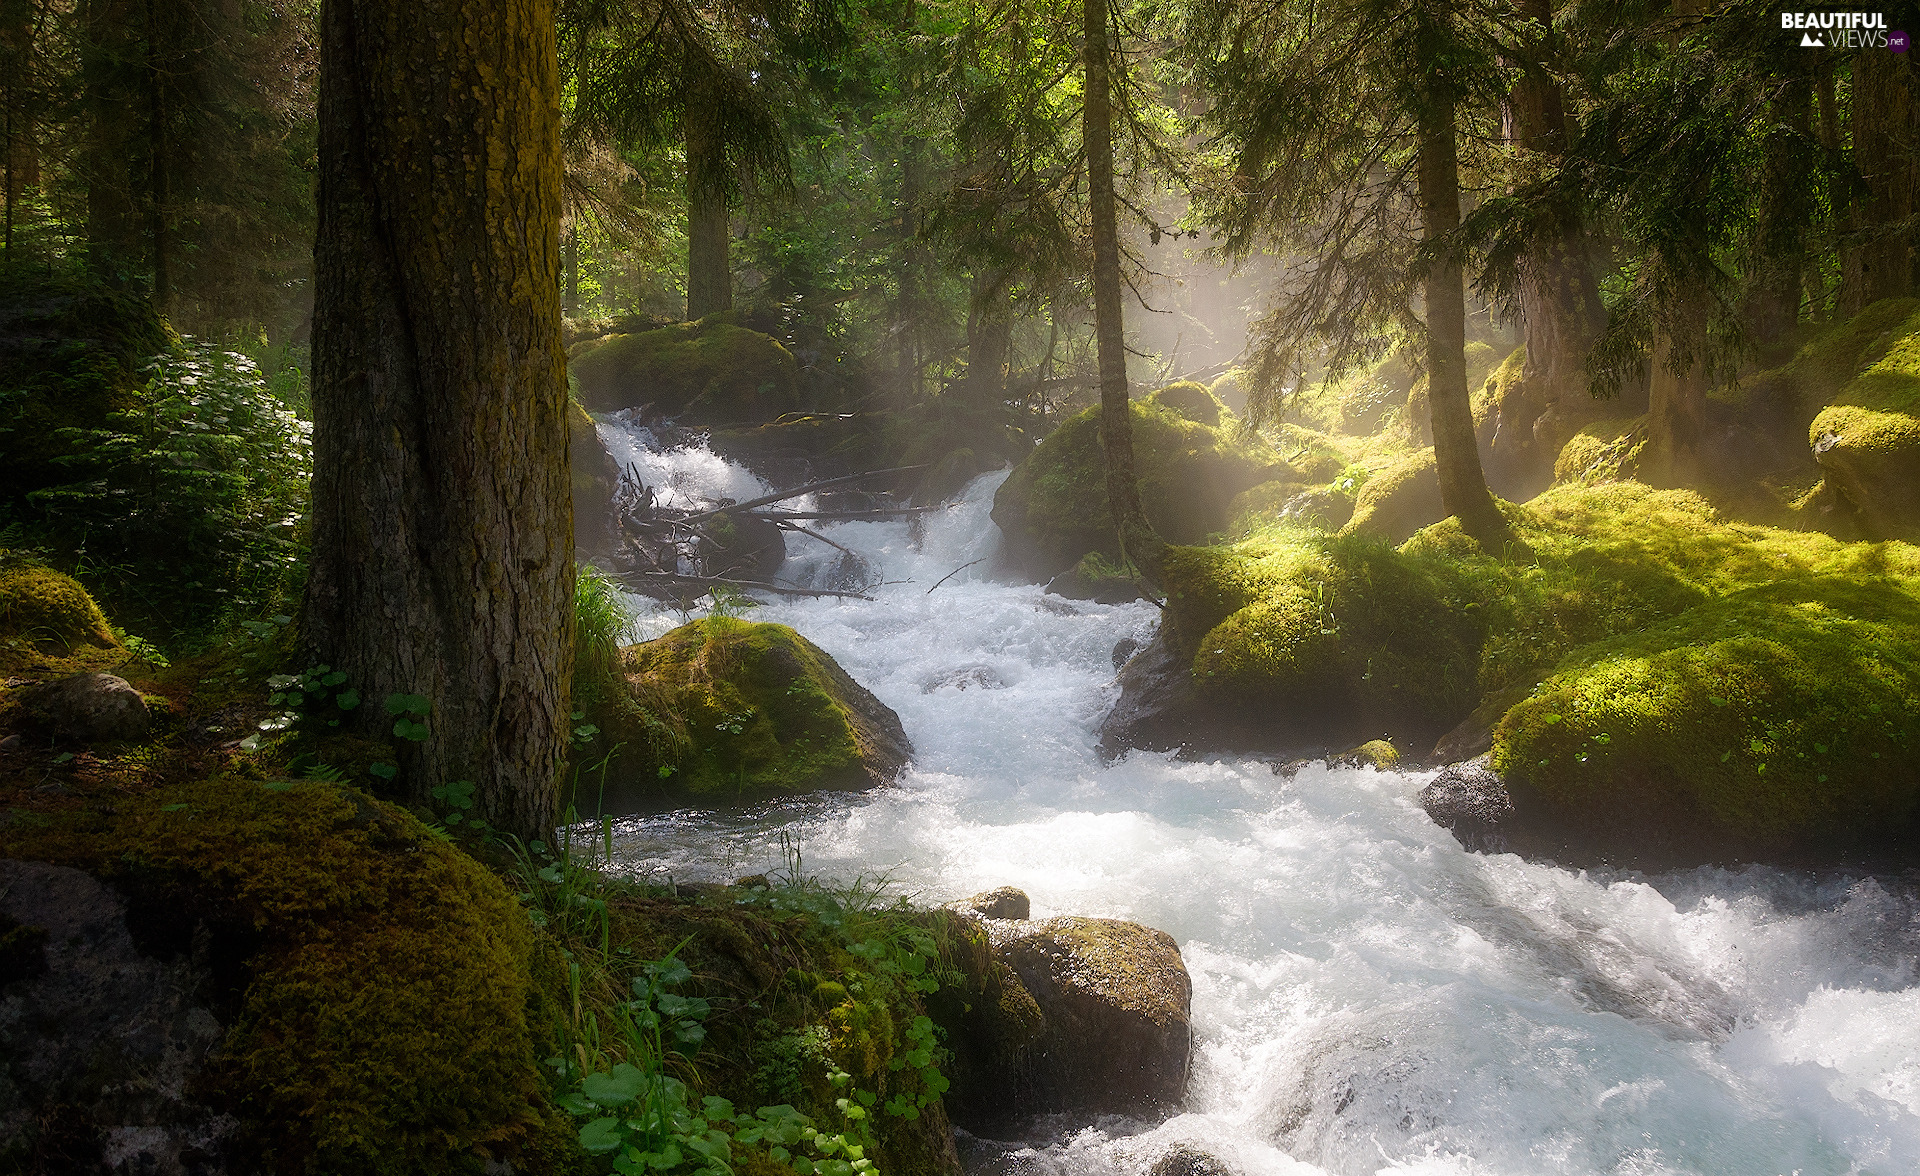 mossy, forest, Plants, light breaking through sky, Stones, River